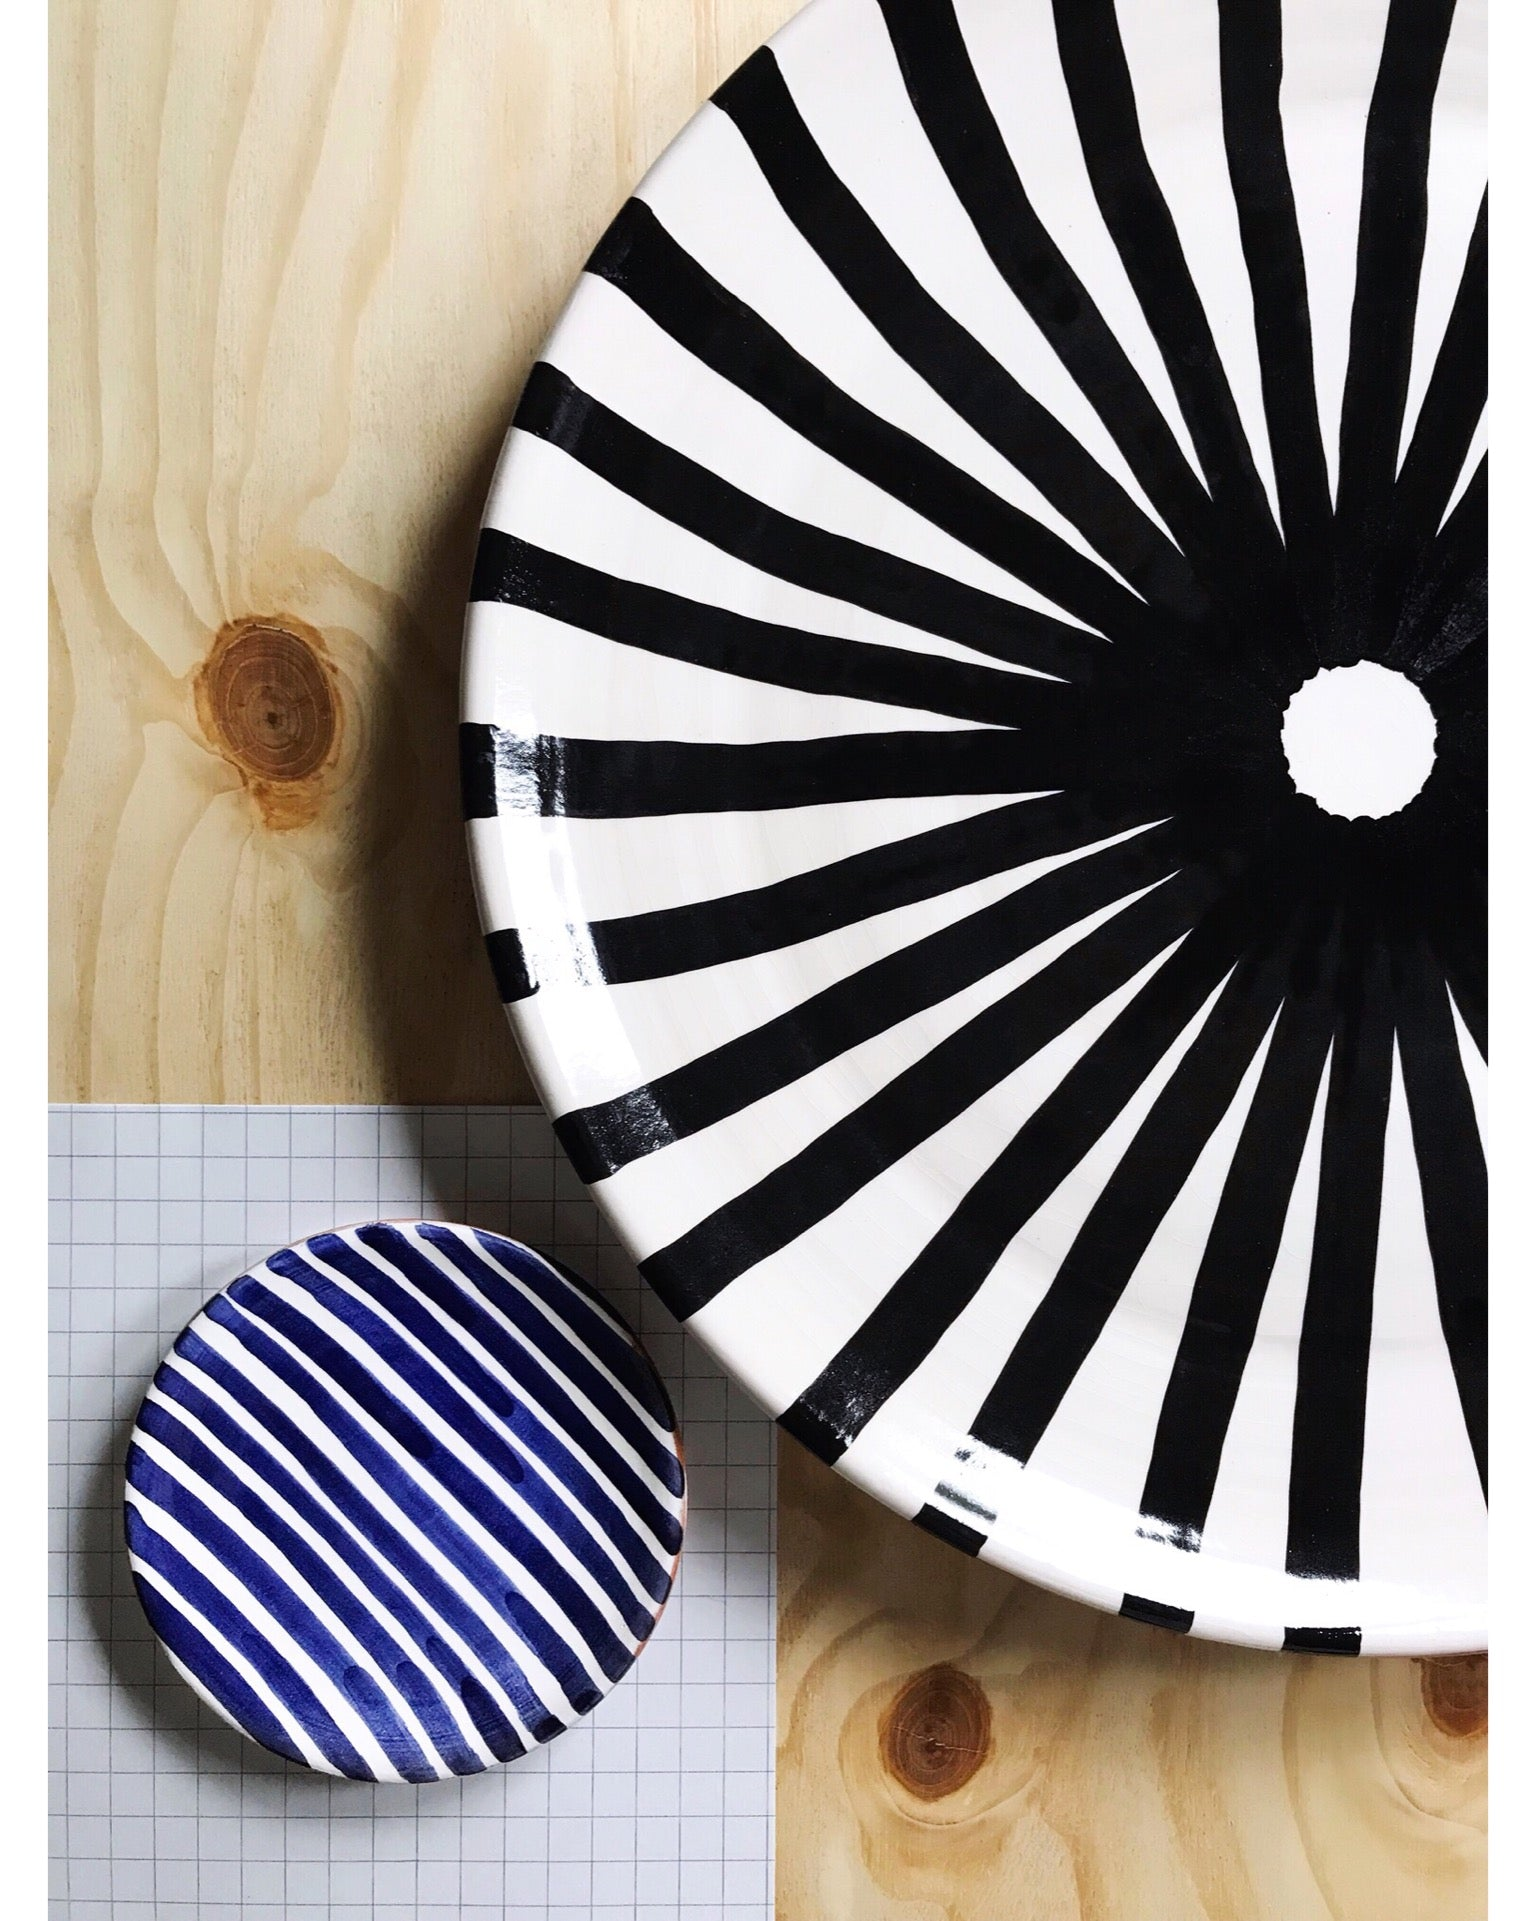 Casa Cubista Graphic Tableware- Pattern Plates - Ray